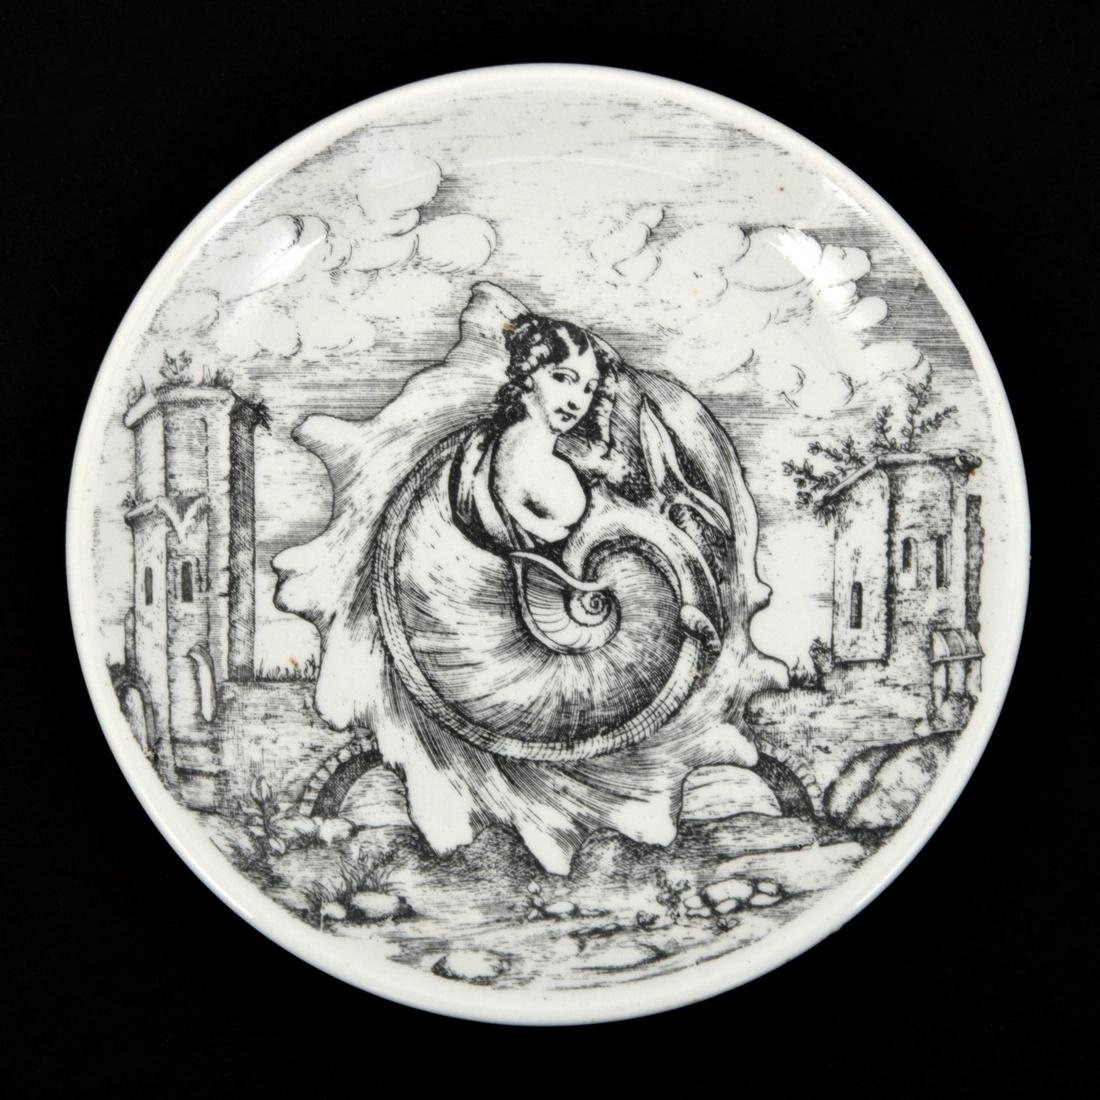 Piero Fornasetti LE OCEANIDI Coasters, Set of 6 - 8